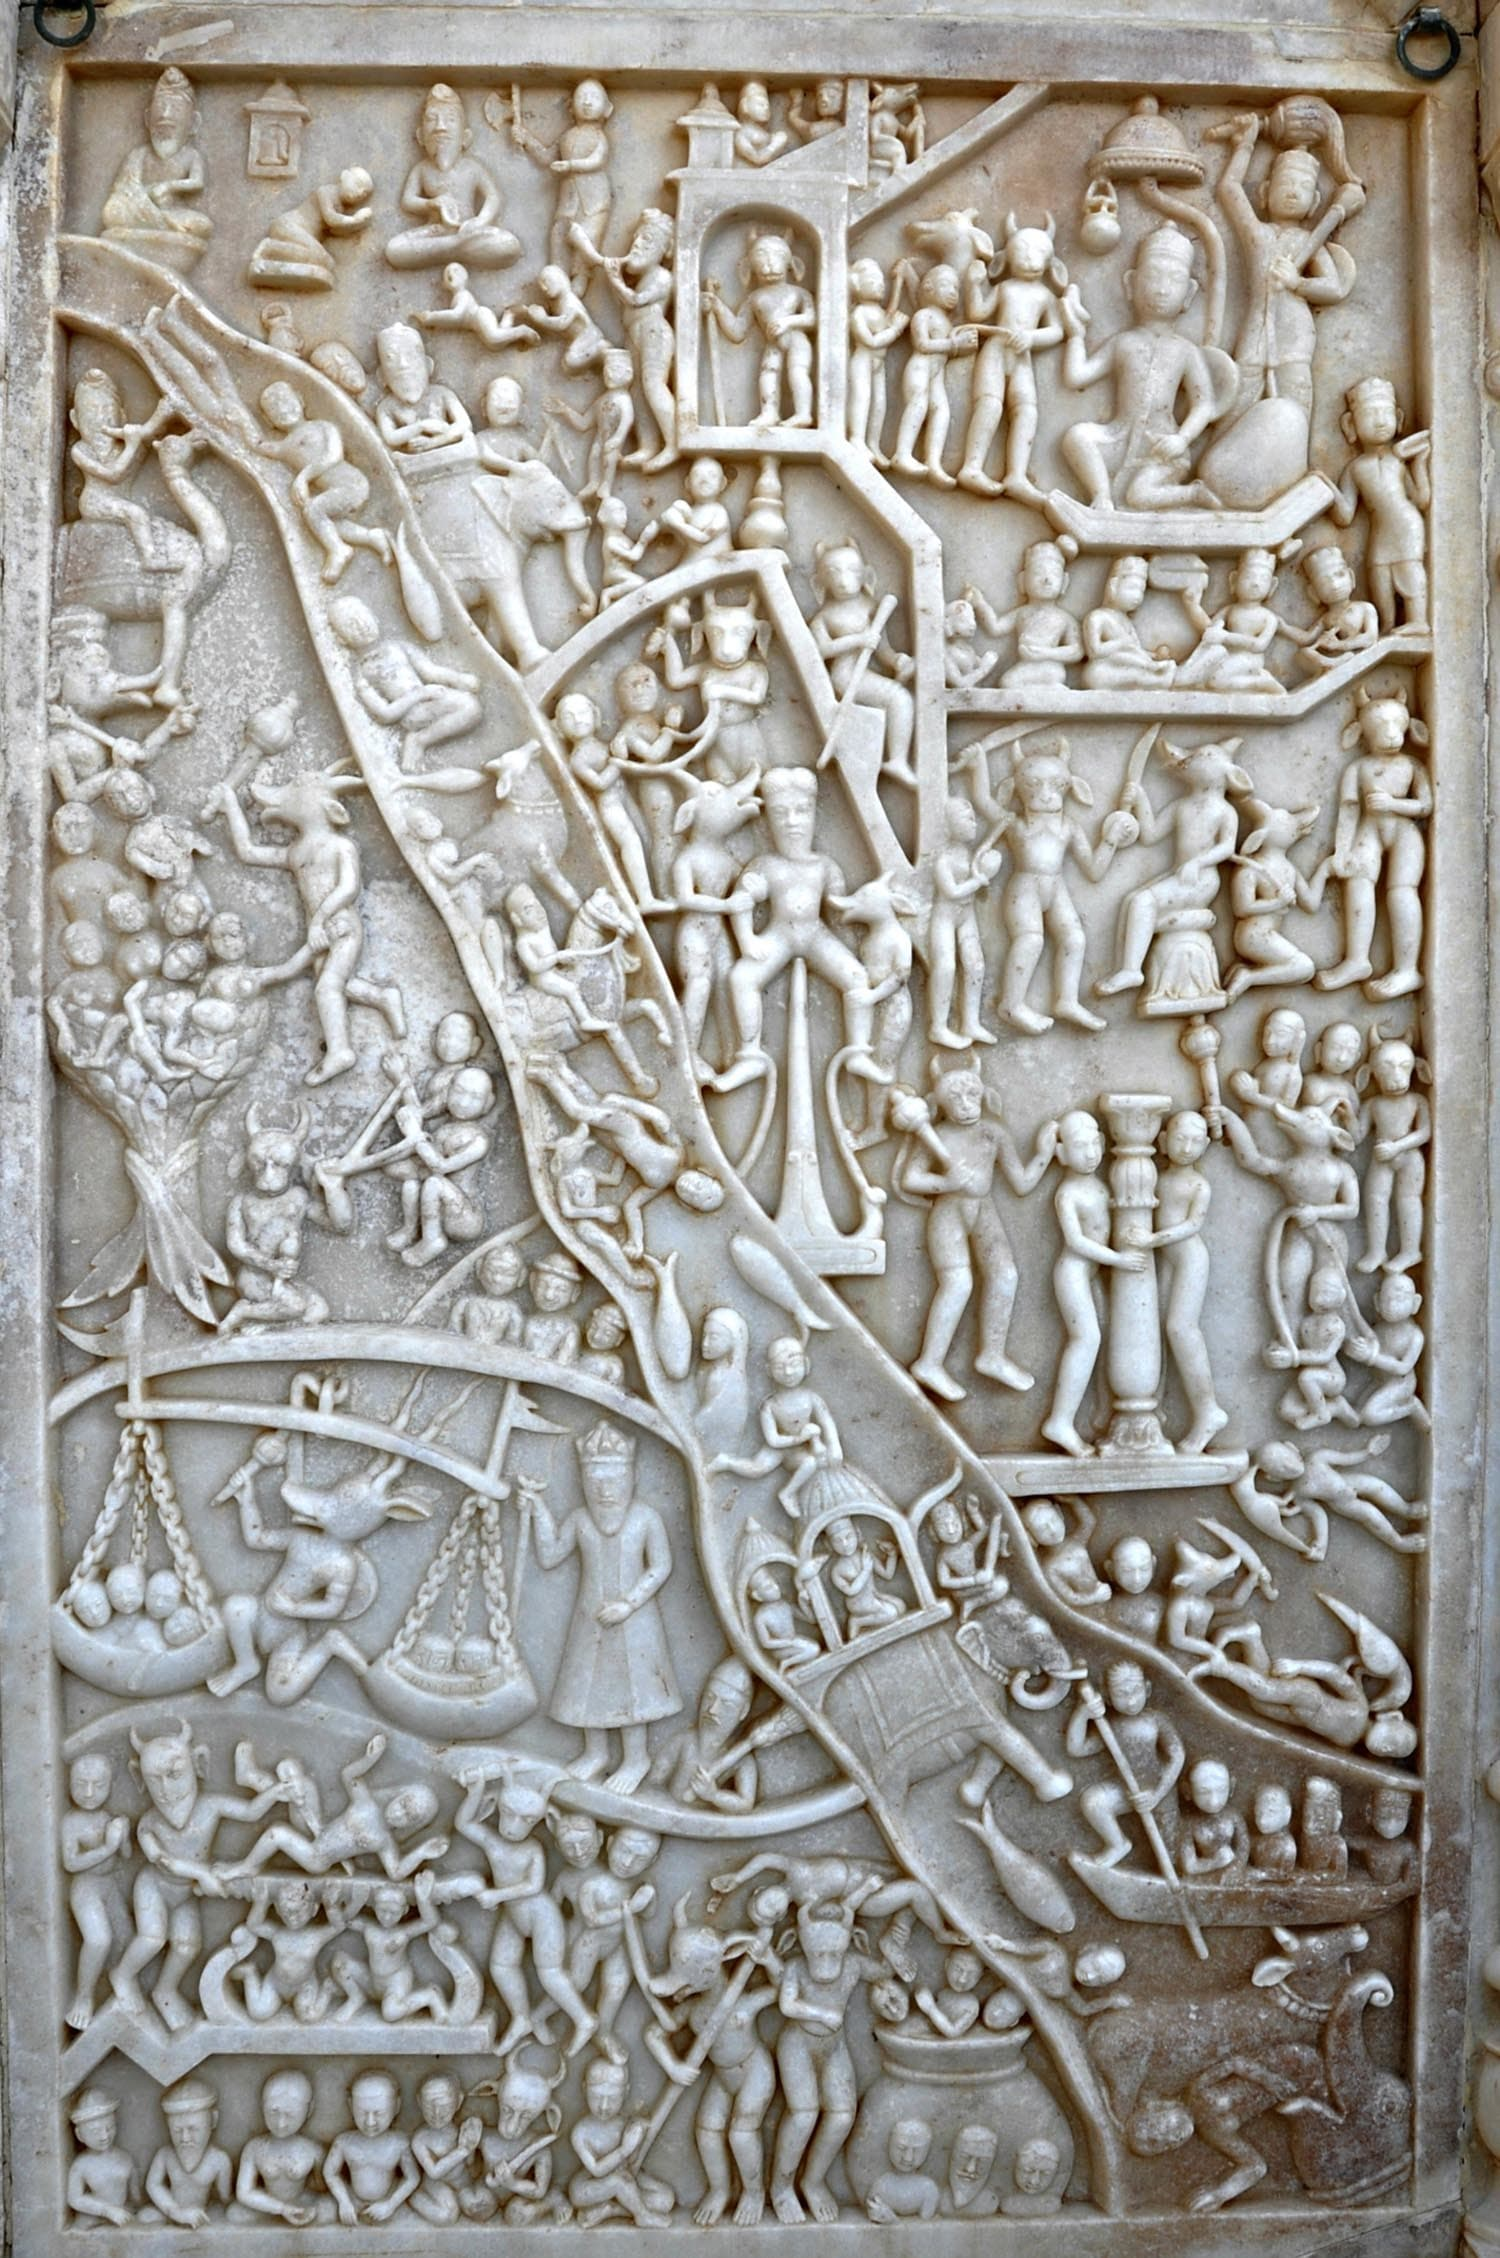 Sadho Belo - Tableaux depicting a scene from hell